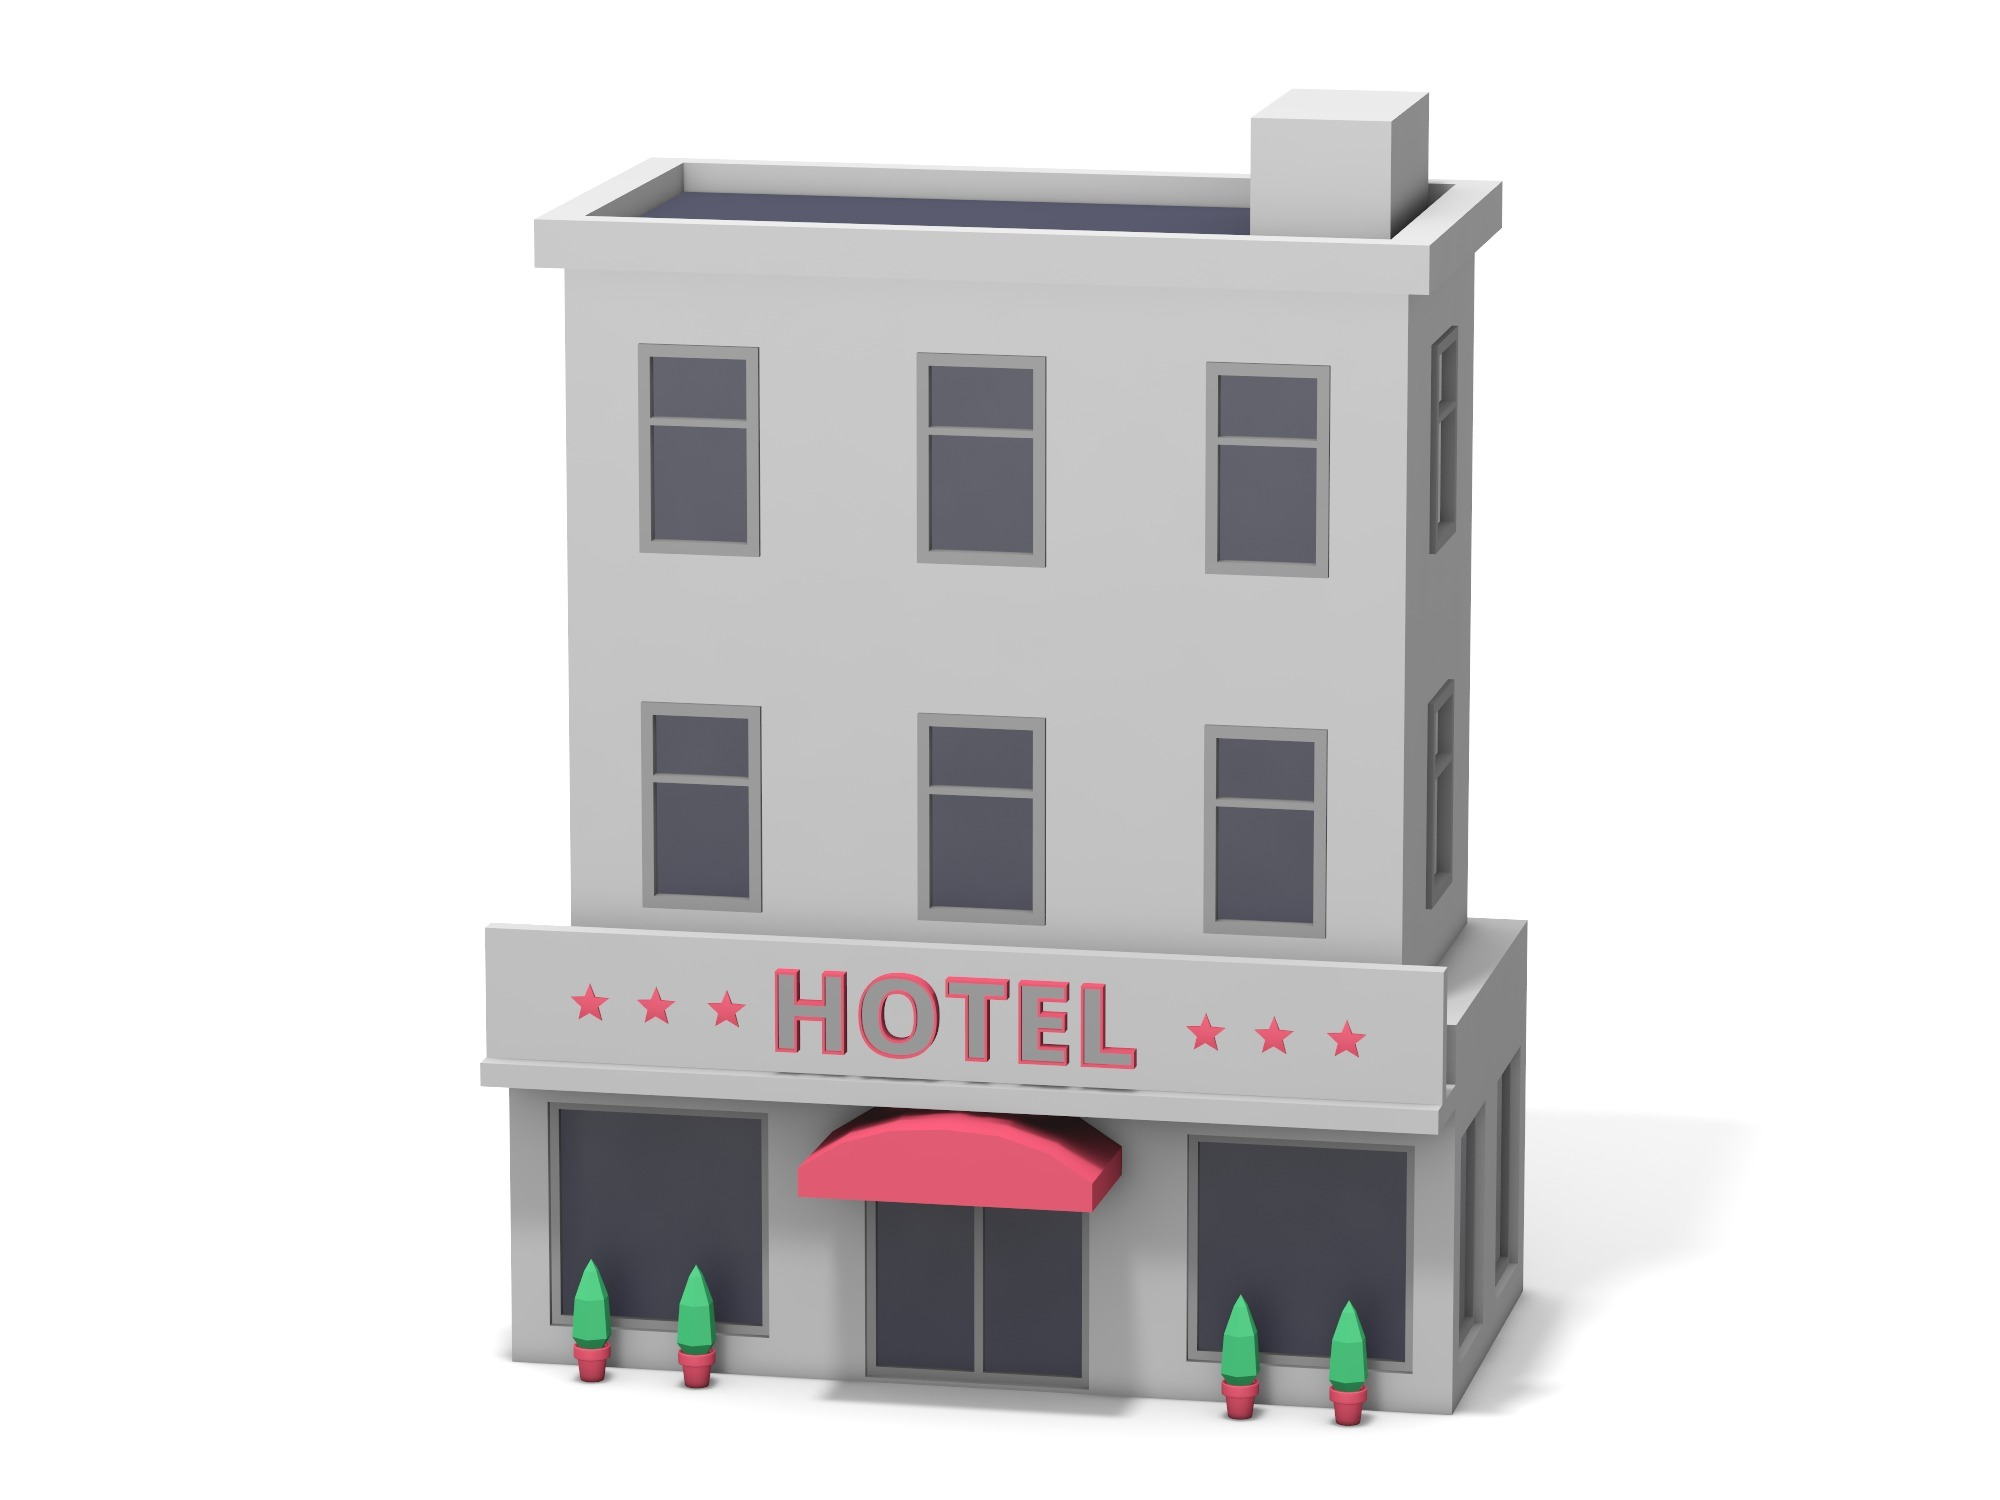 Three storey hotel - 3D design by Vectary assets Nov 7, 2018